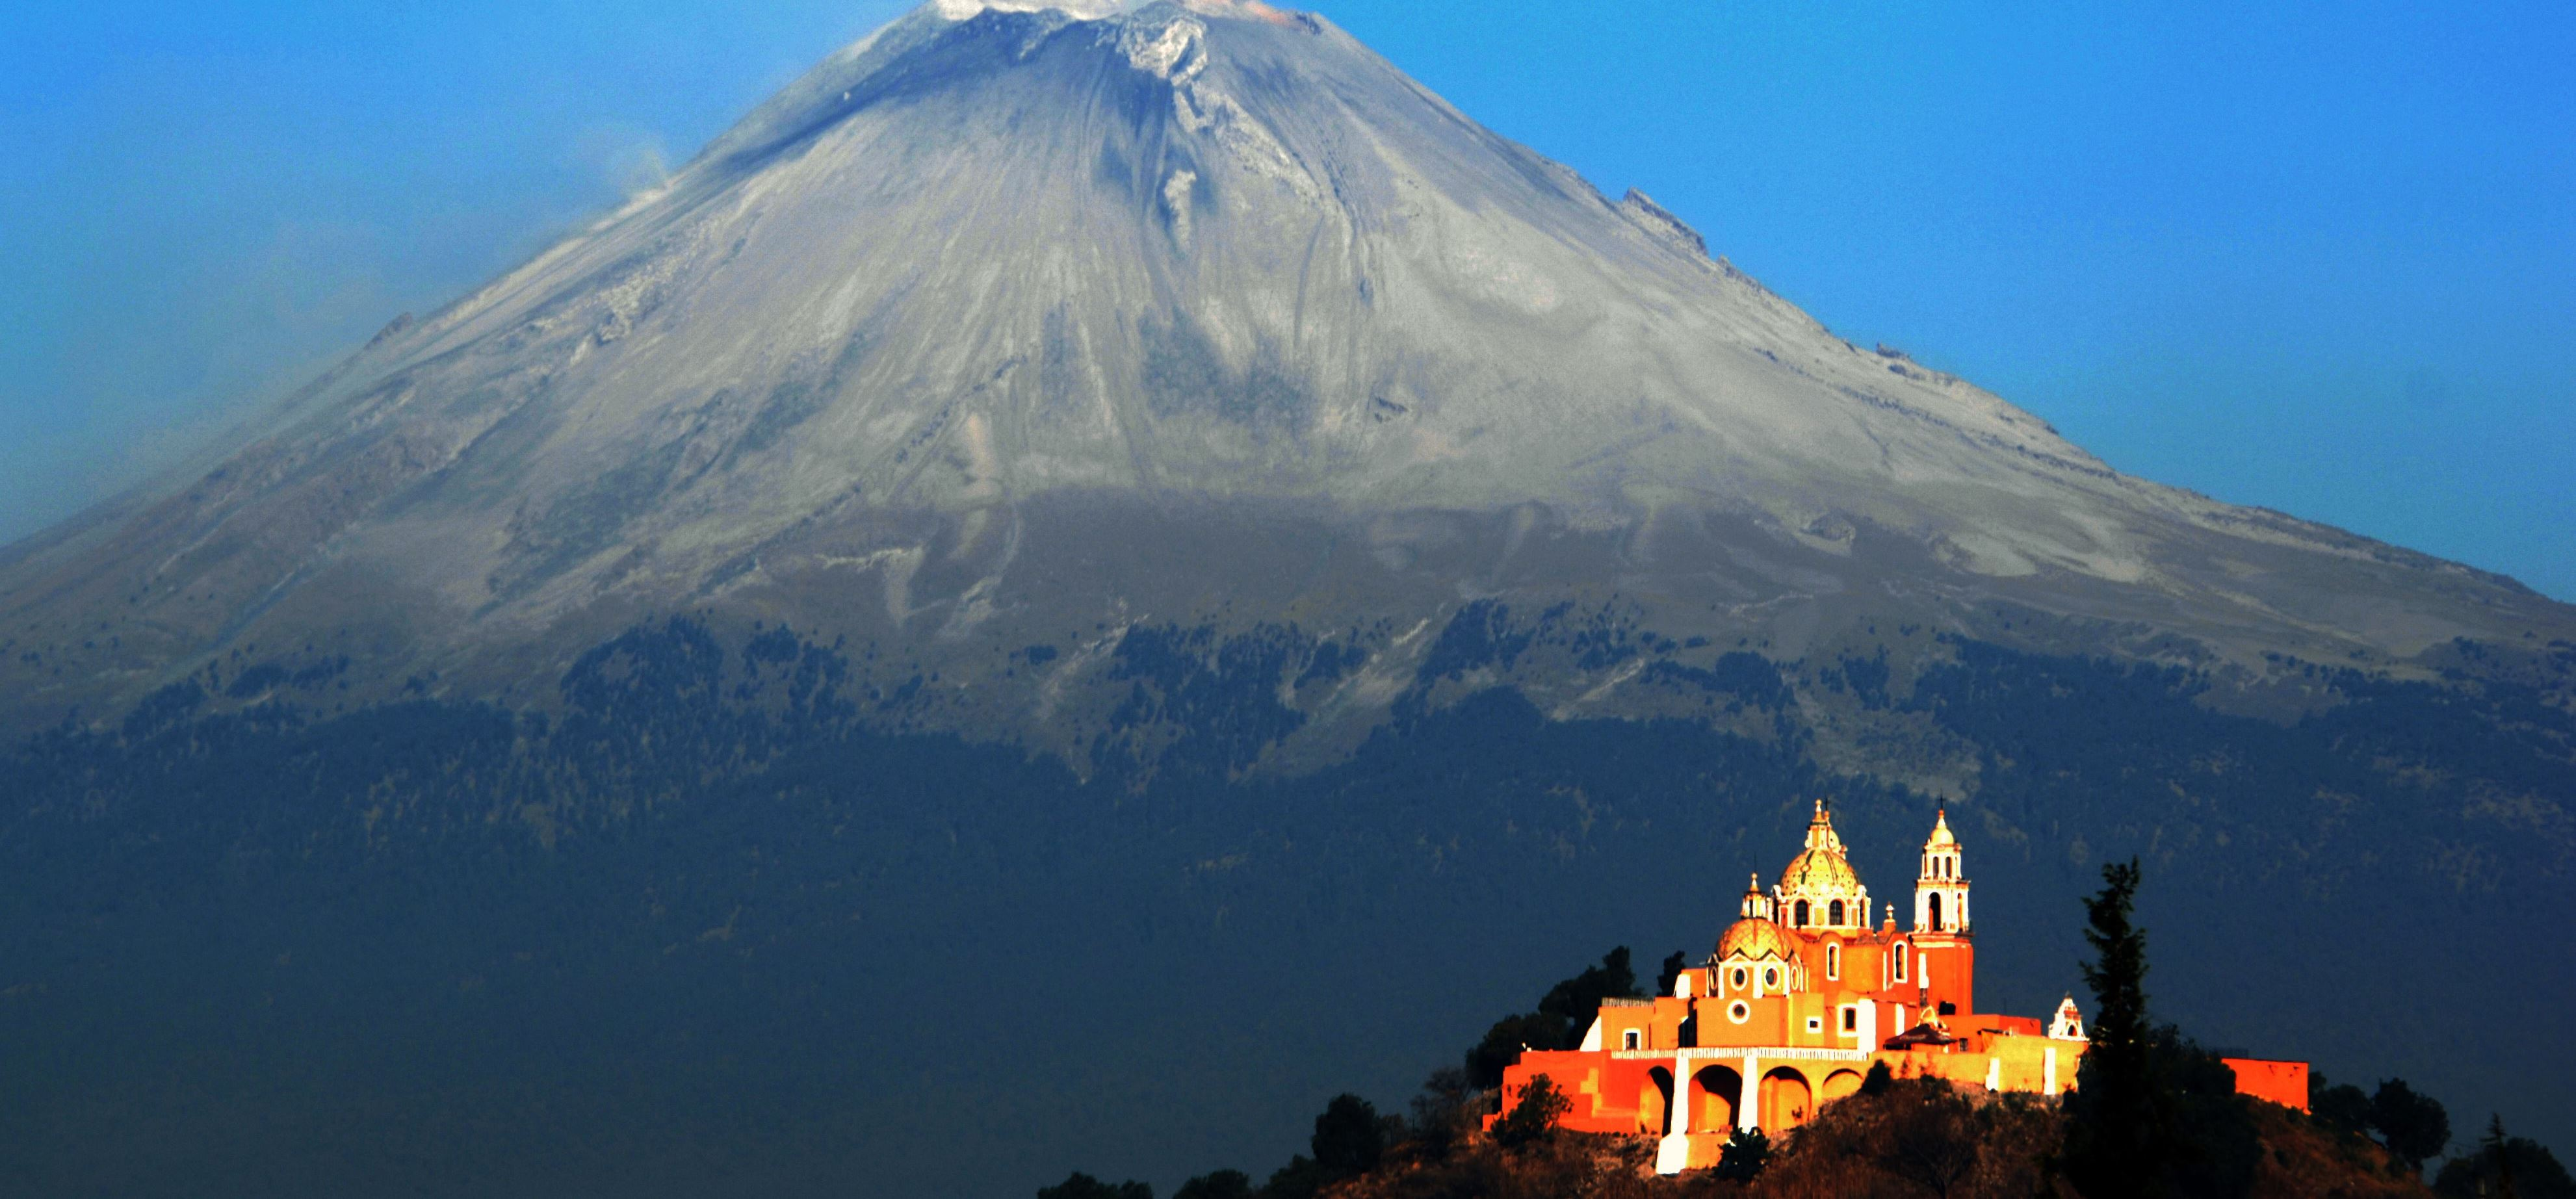 Church of Our Lady of Remedies at the top of Cholula pyramid